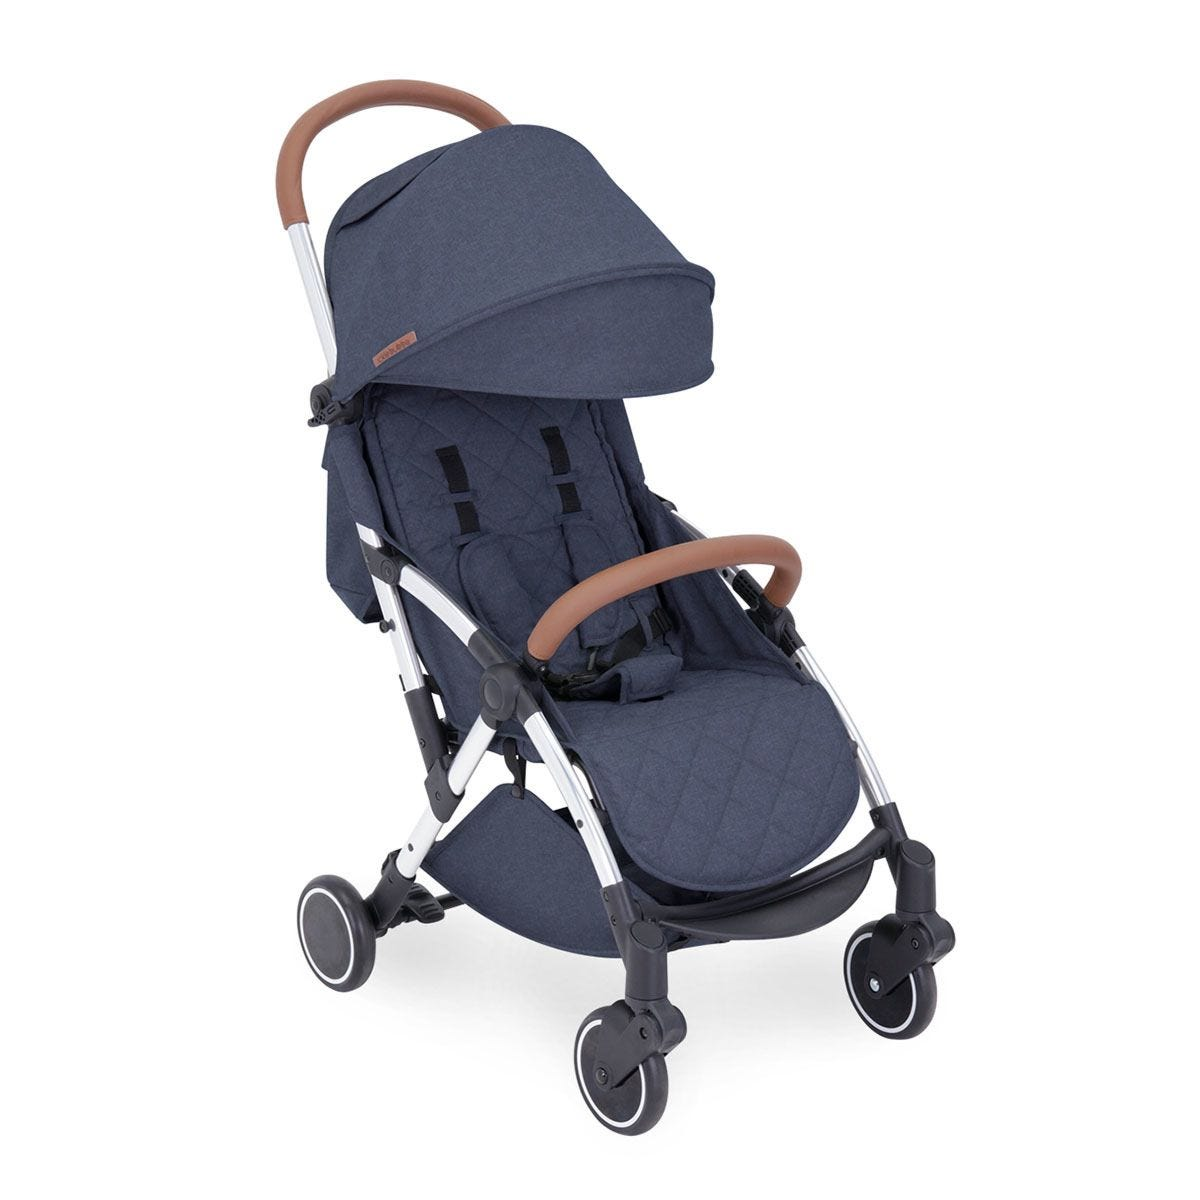 Ickle Bubba Globe Stroller - Denim Blue on Silver